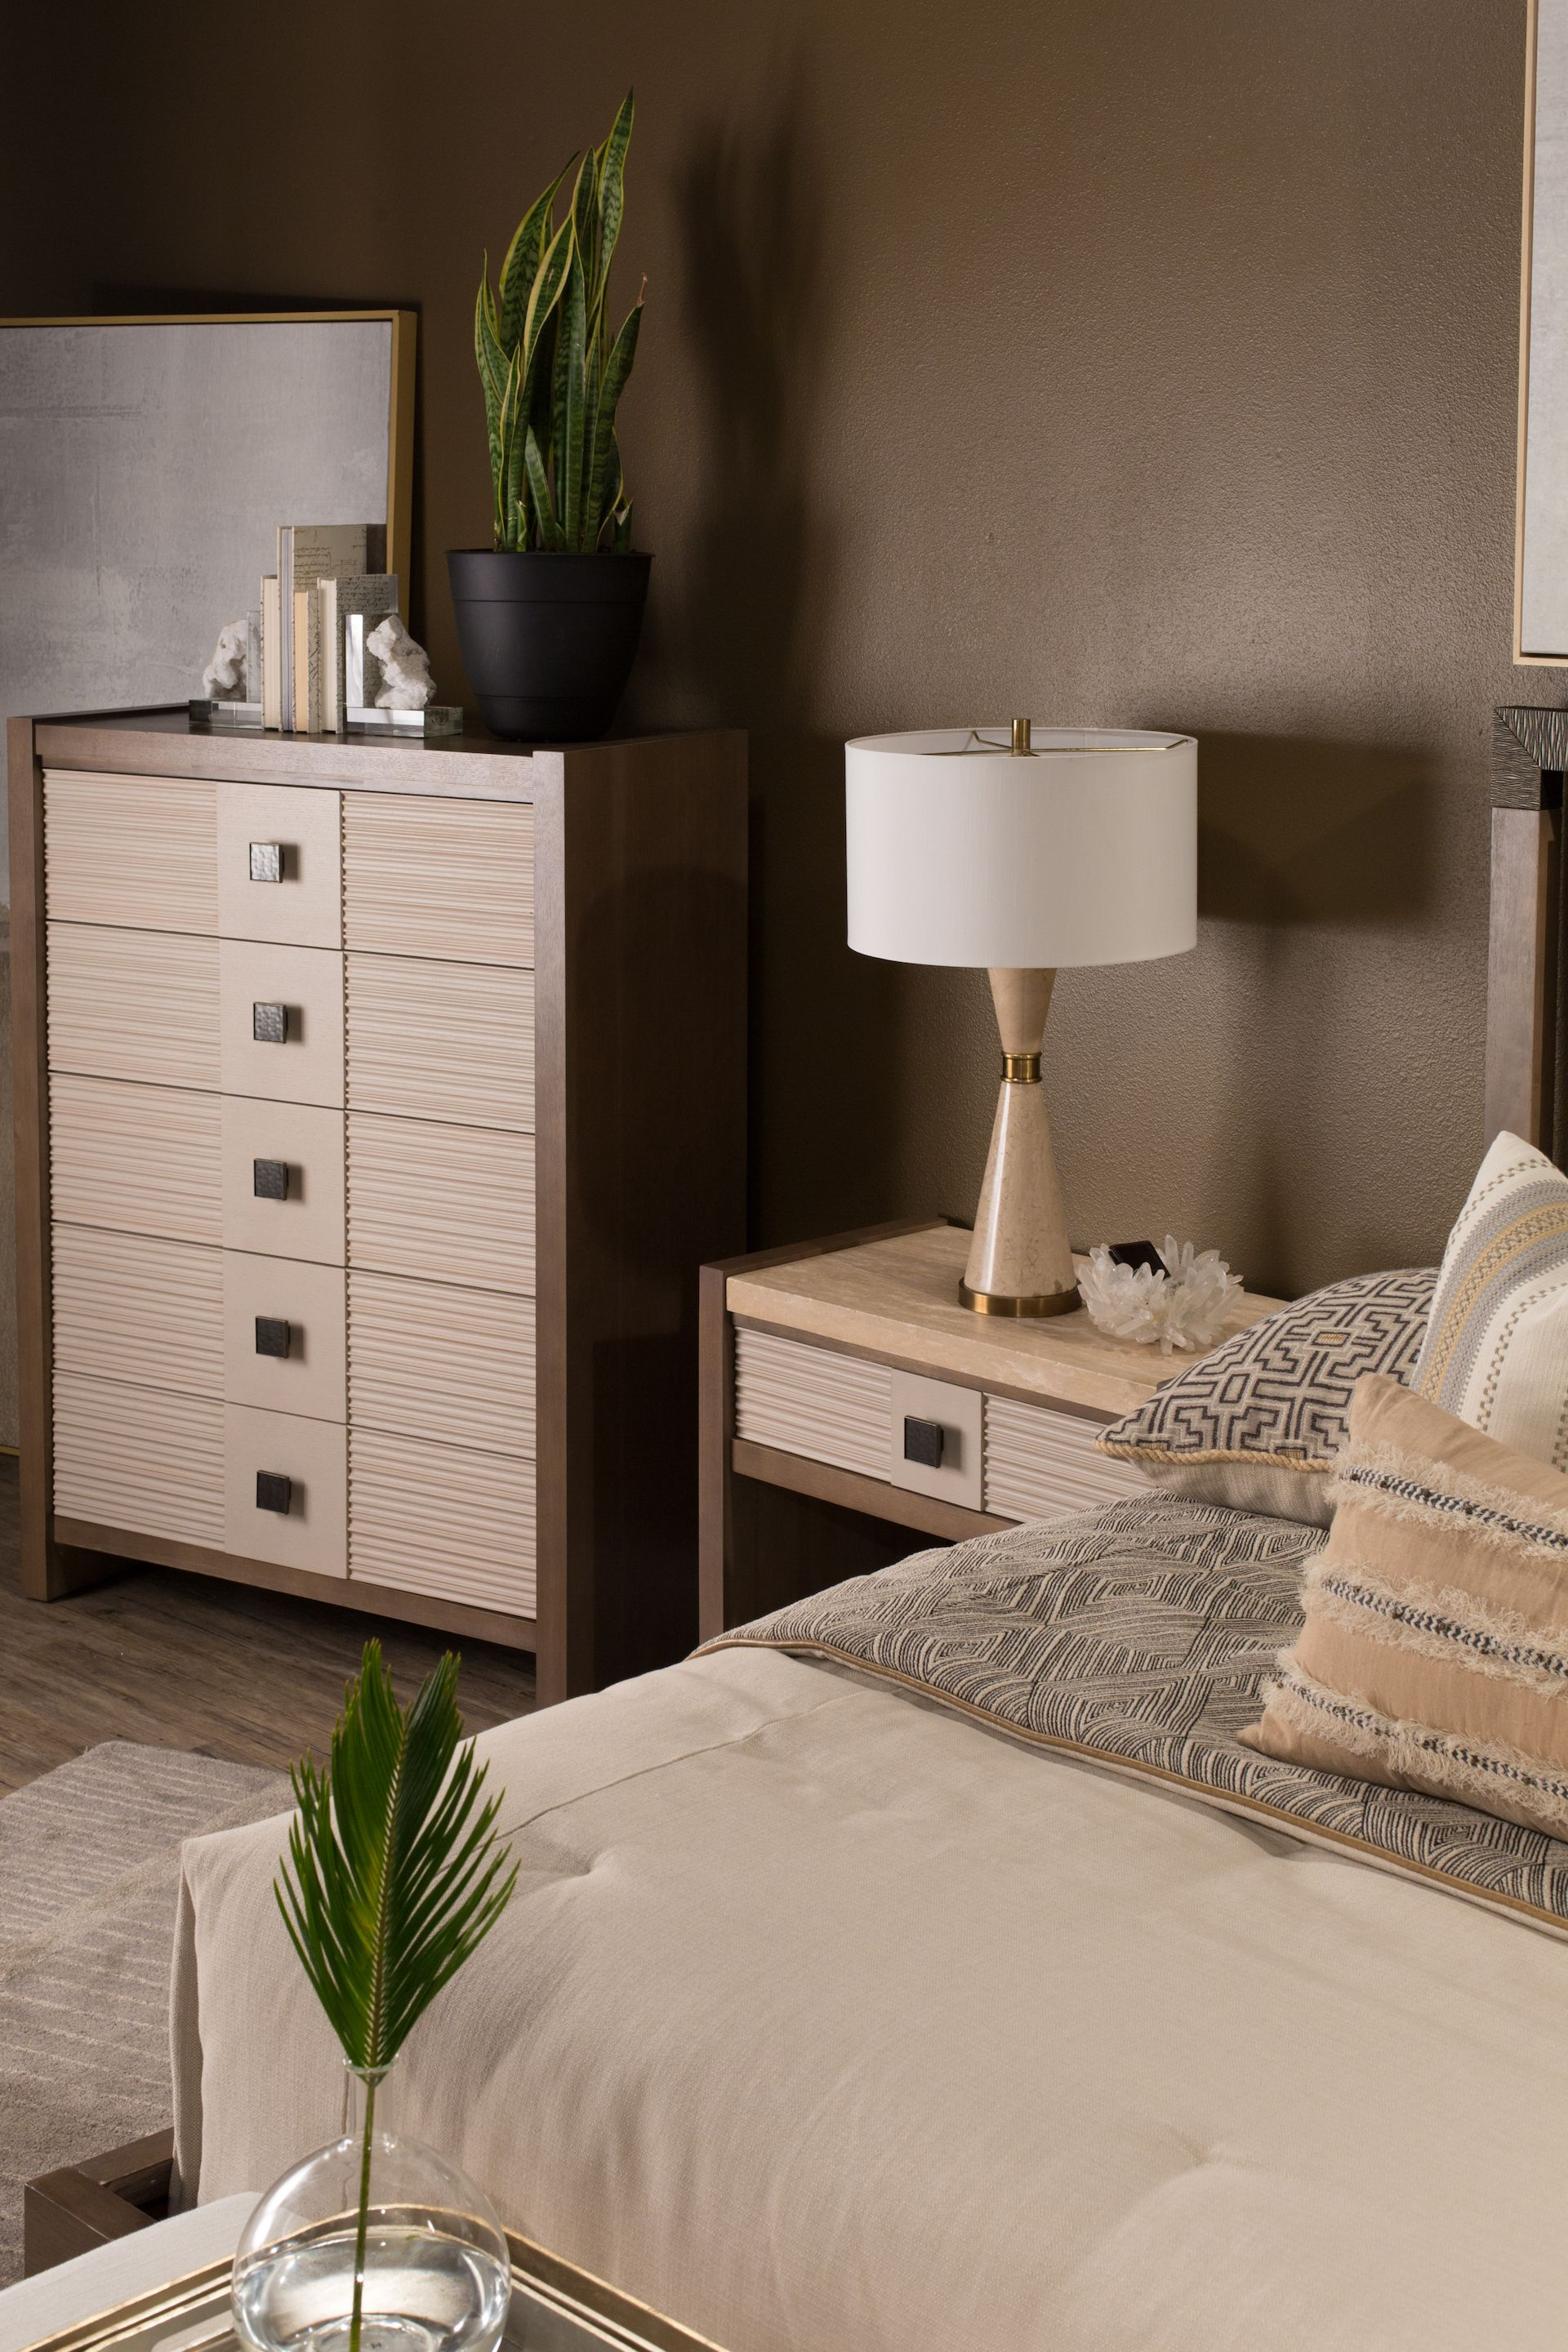 Synchronicity by Universal Furniture, Bedroom furniture